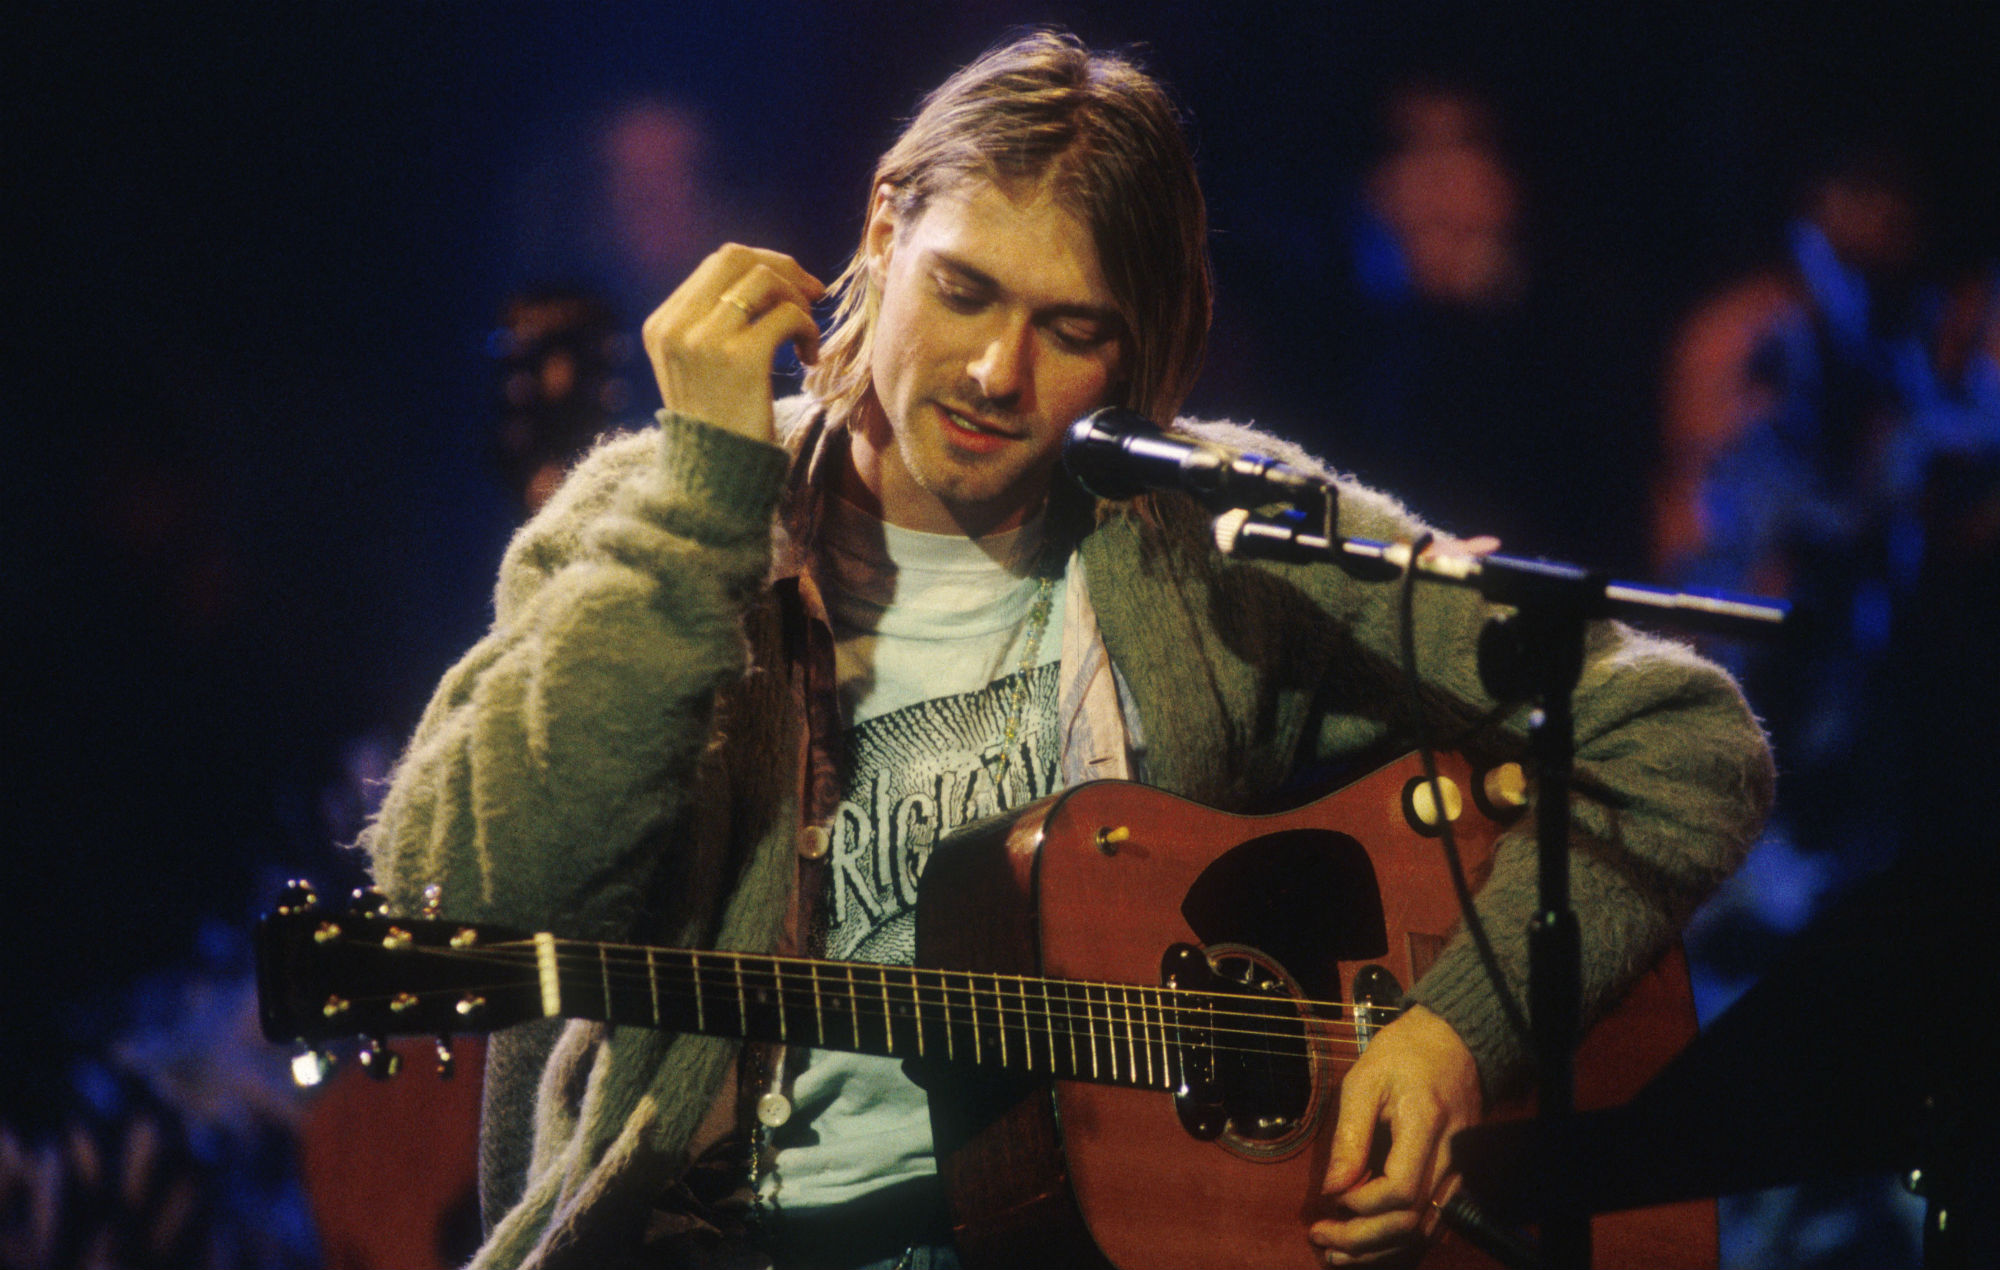 New clothing range launched by Kurt Cobain's estate